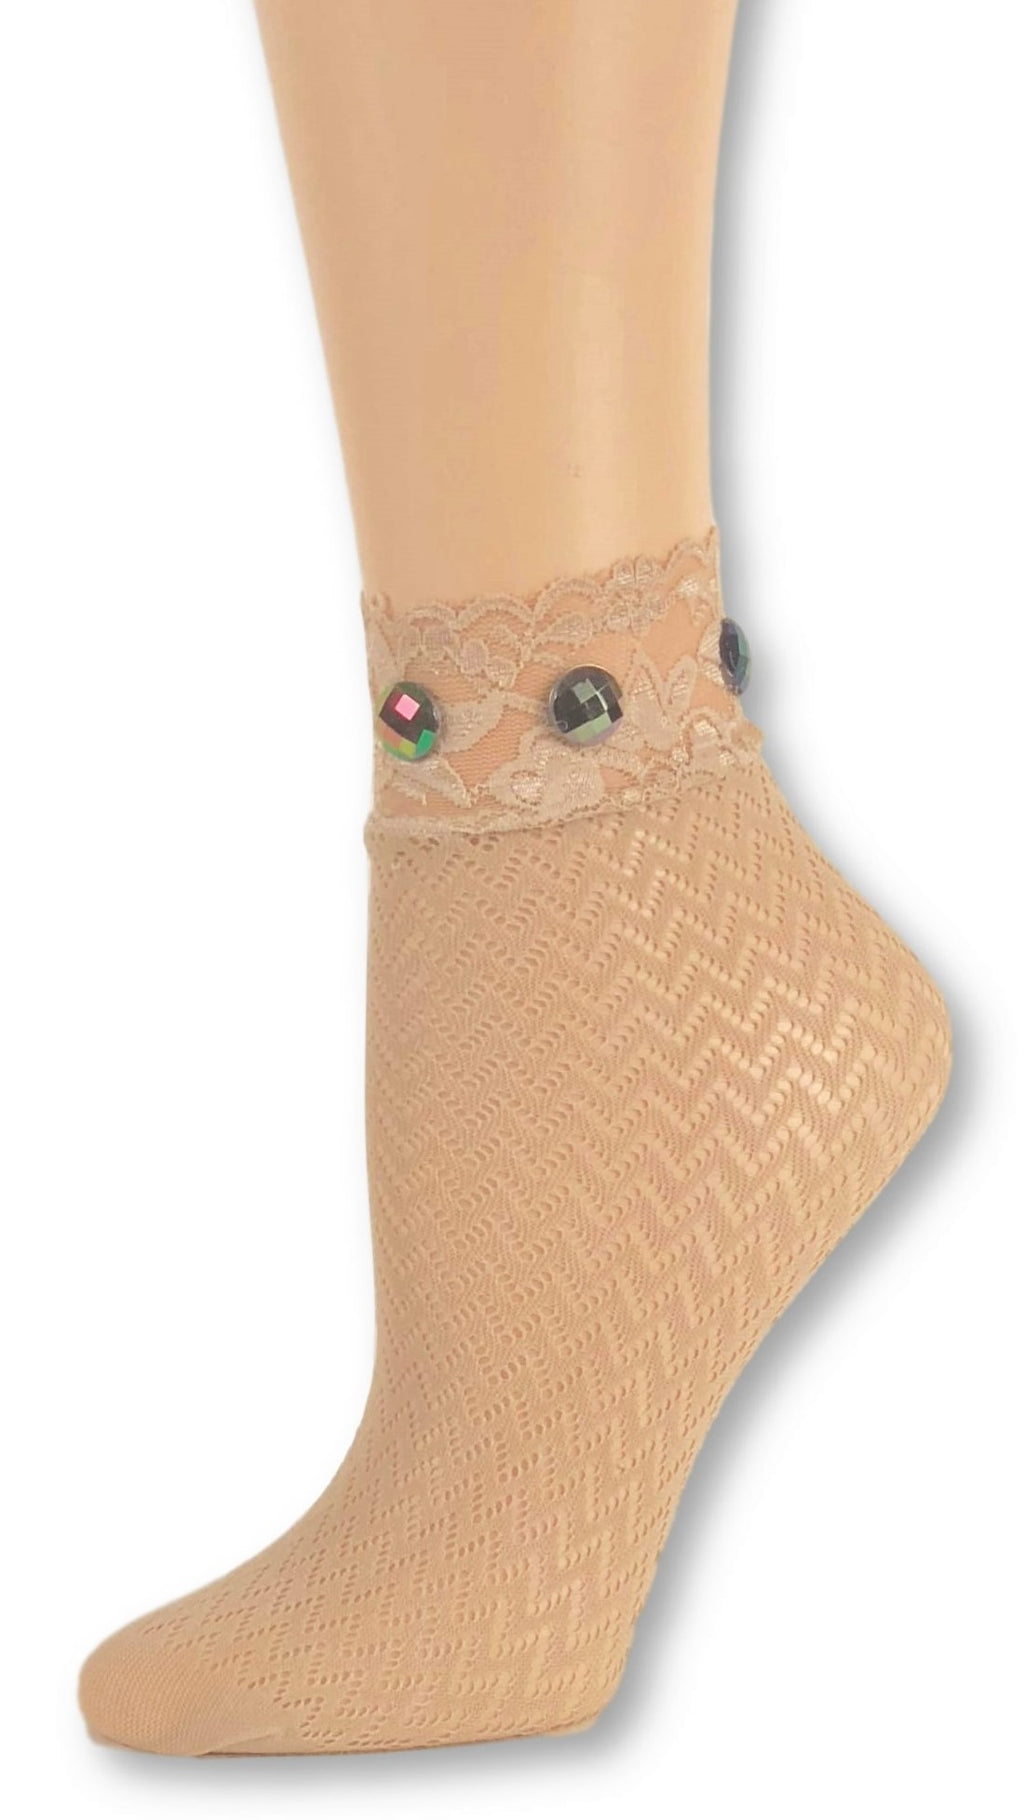 Sleek Beige Custom Mesh Socks with beads